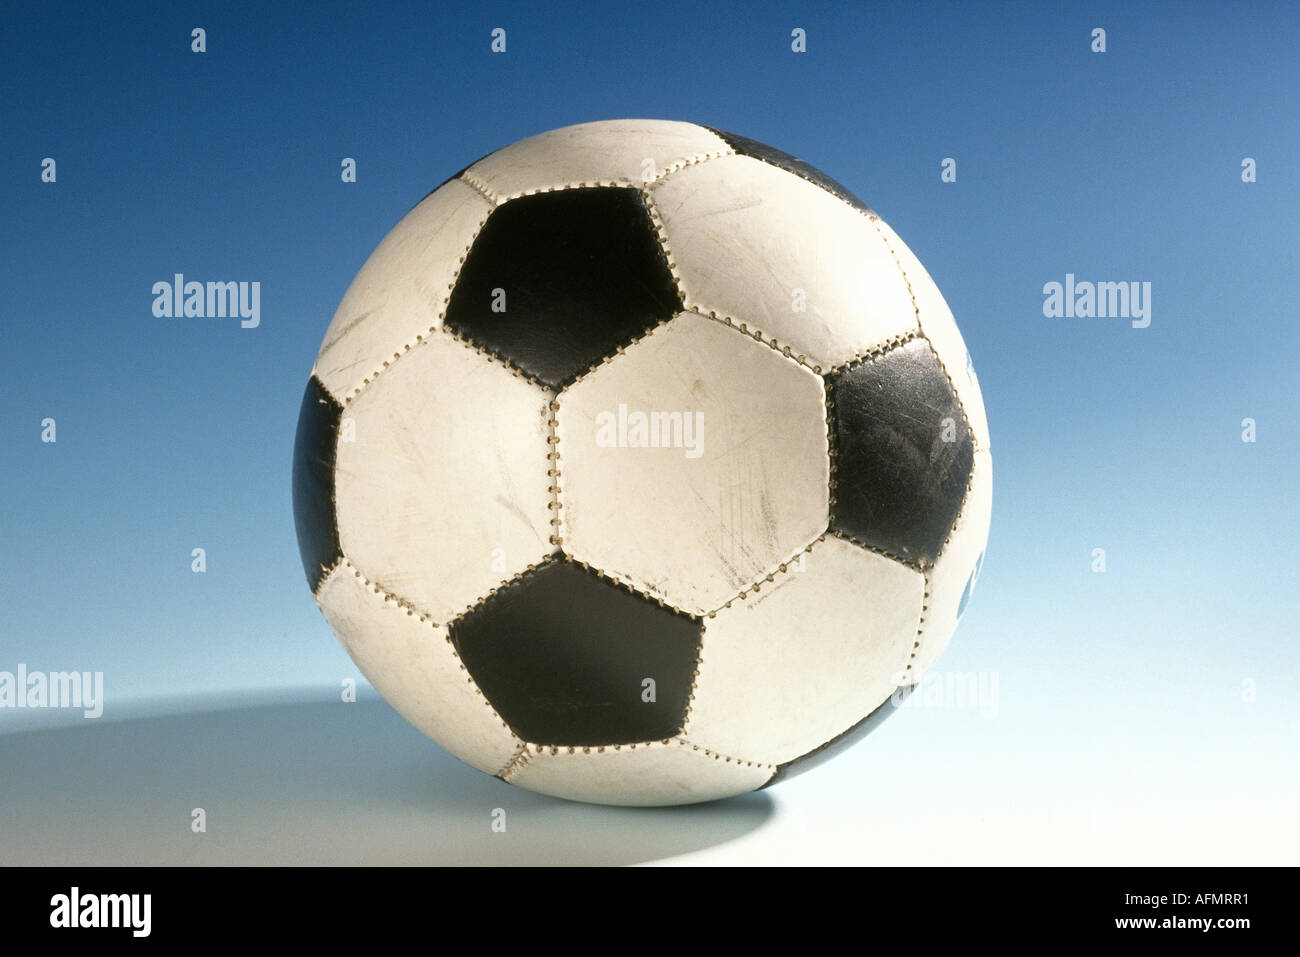 leisure / sports, soccer / football, ball, footy, footie, footer, - Stock Image